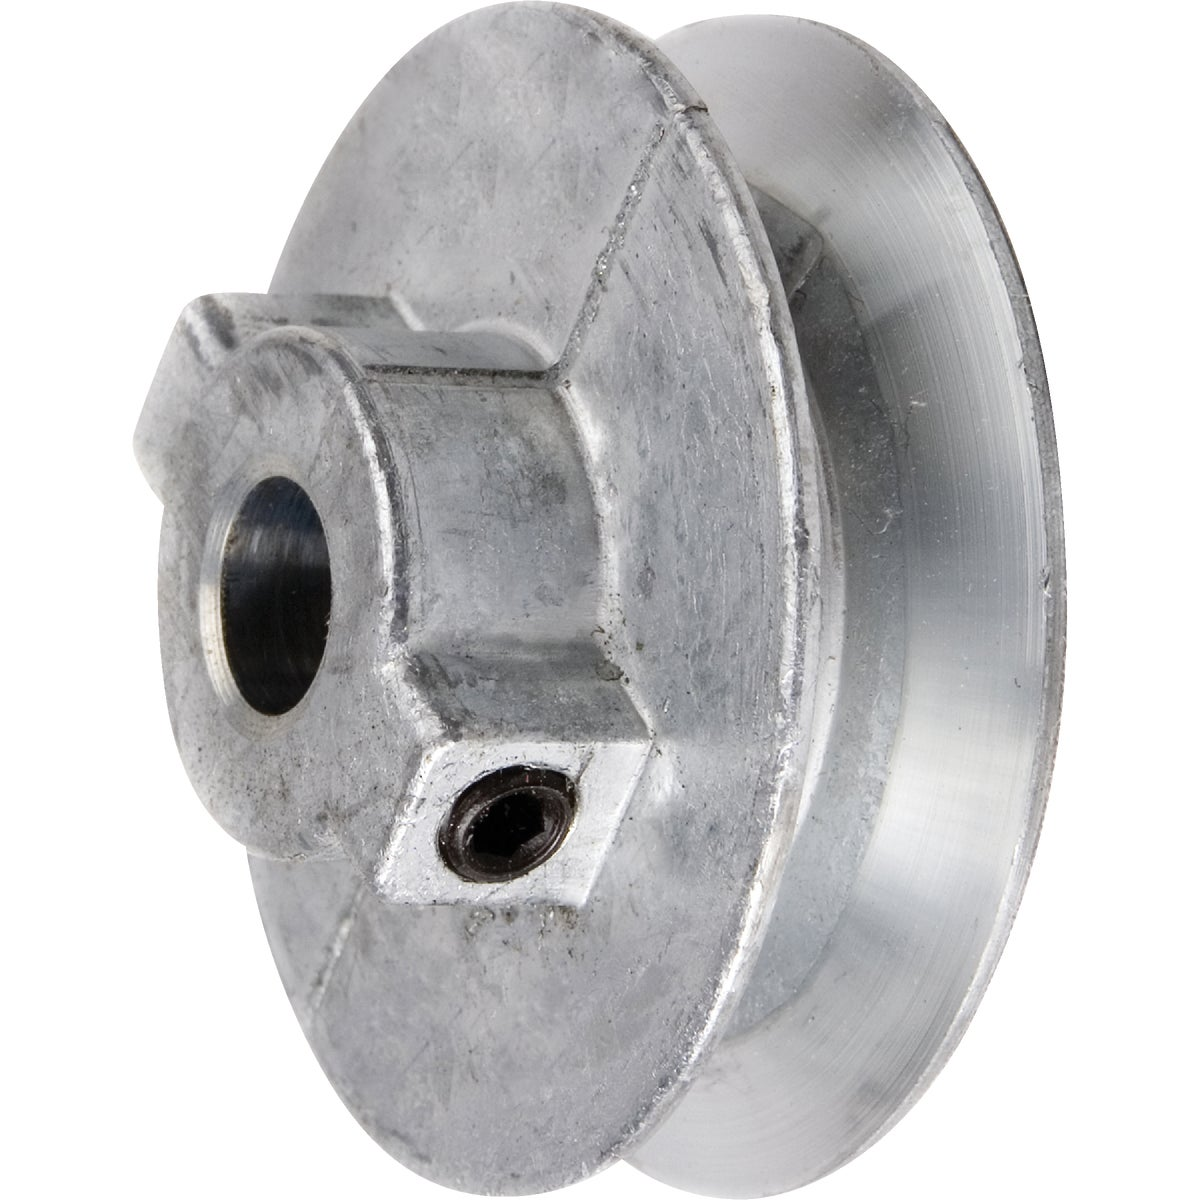 8X1/2 PULLEY - 800A5 by Chicago Die Casting